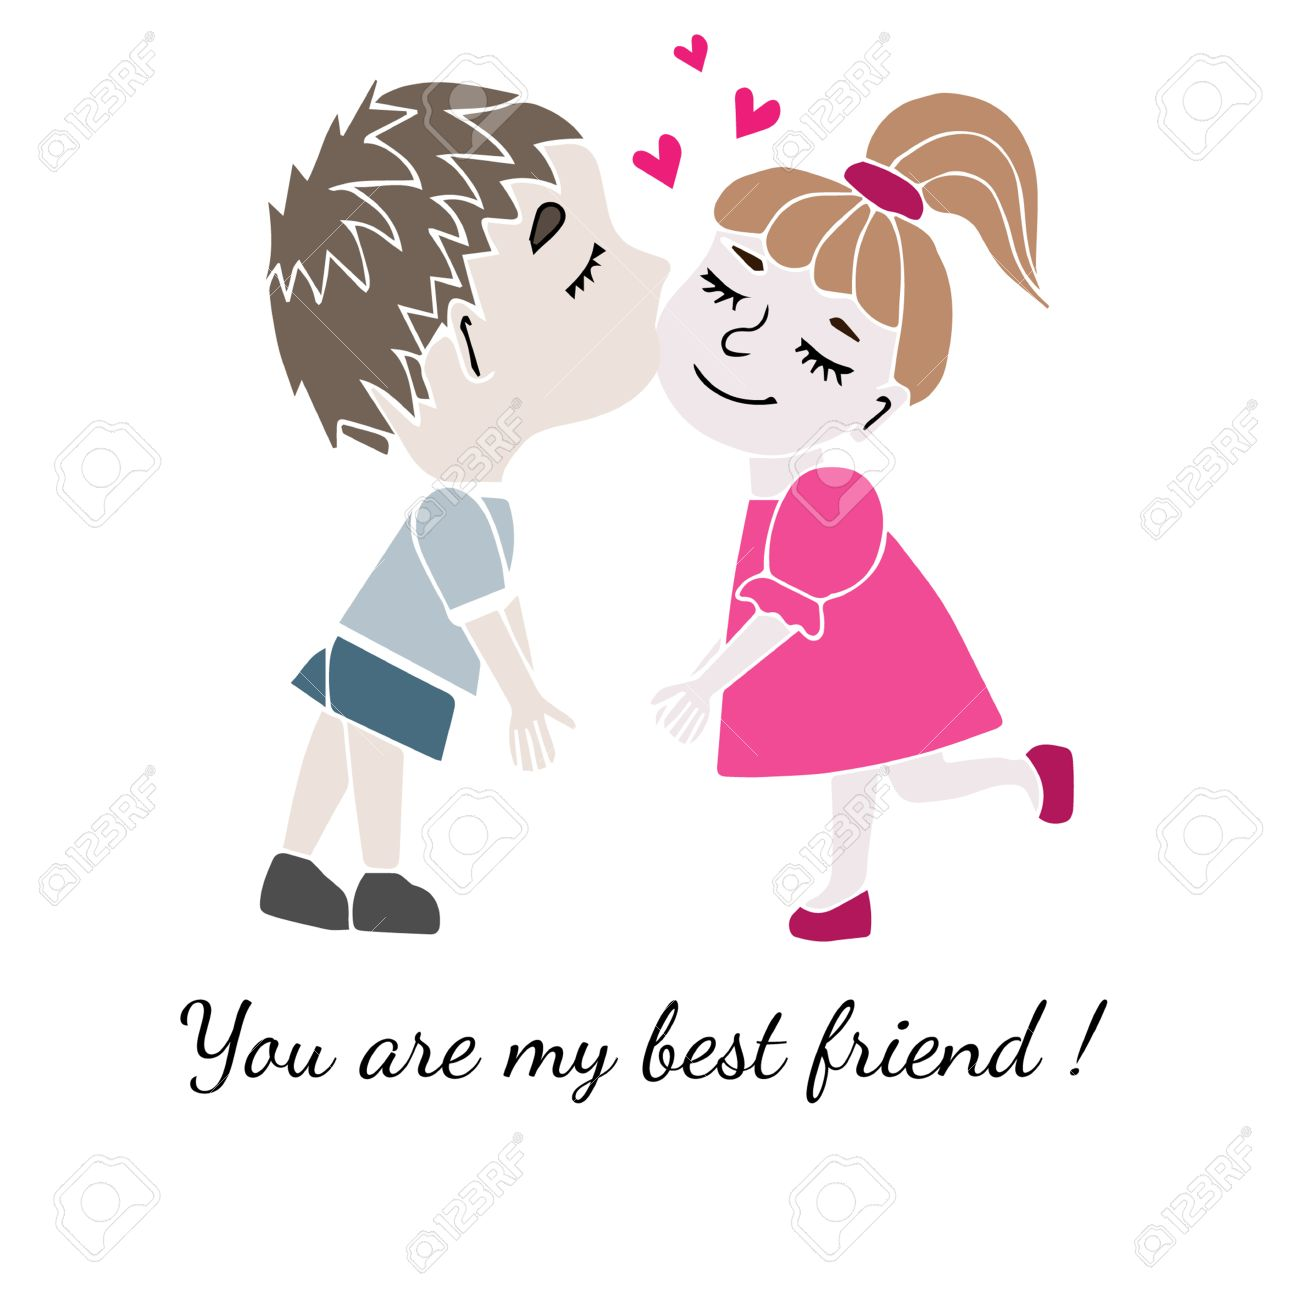 Two Best Friends Boy And Girl Together With Inscription You Are